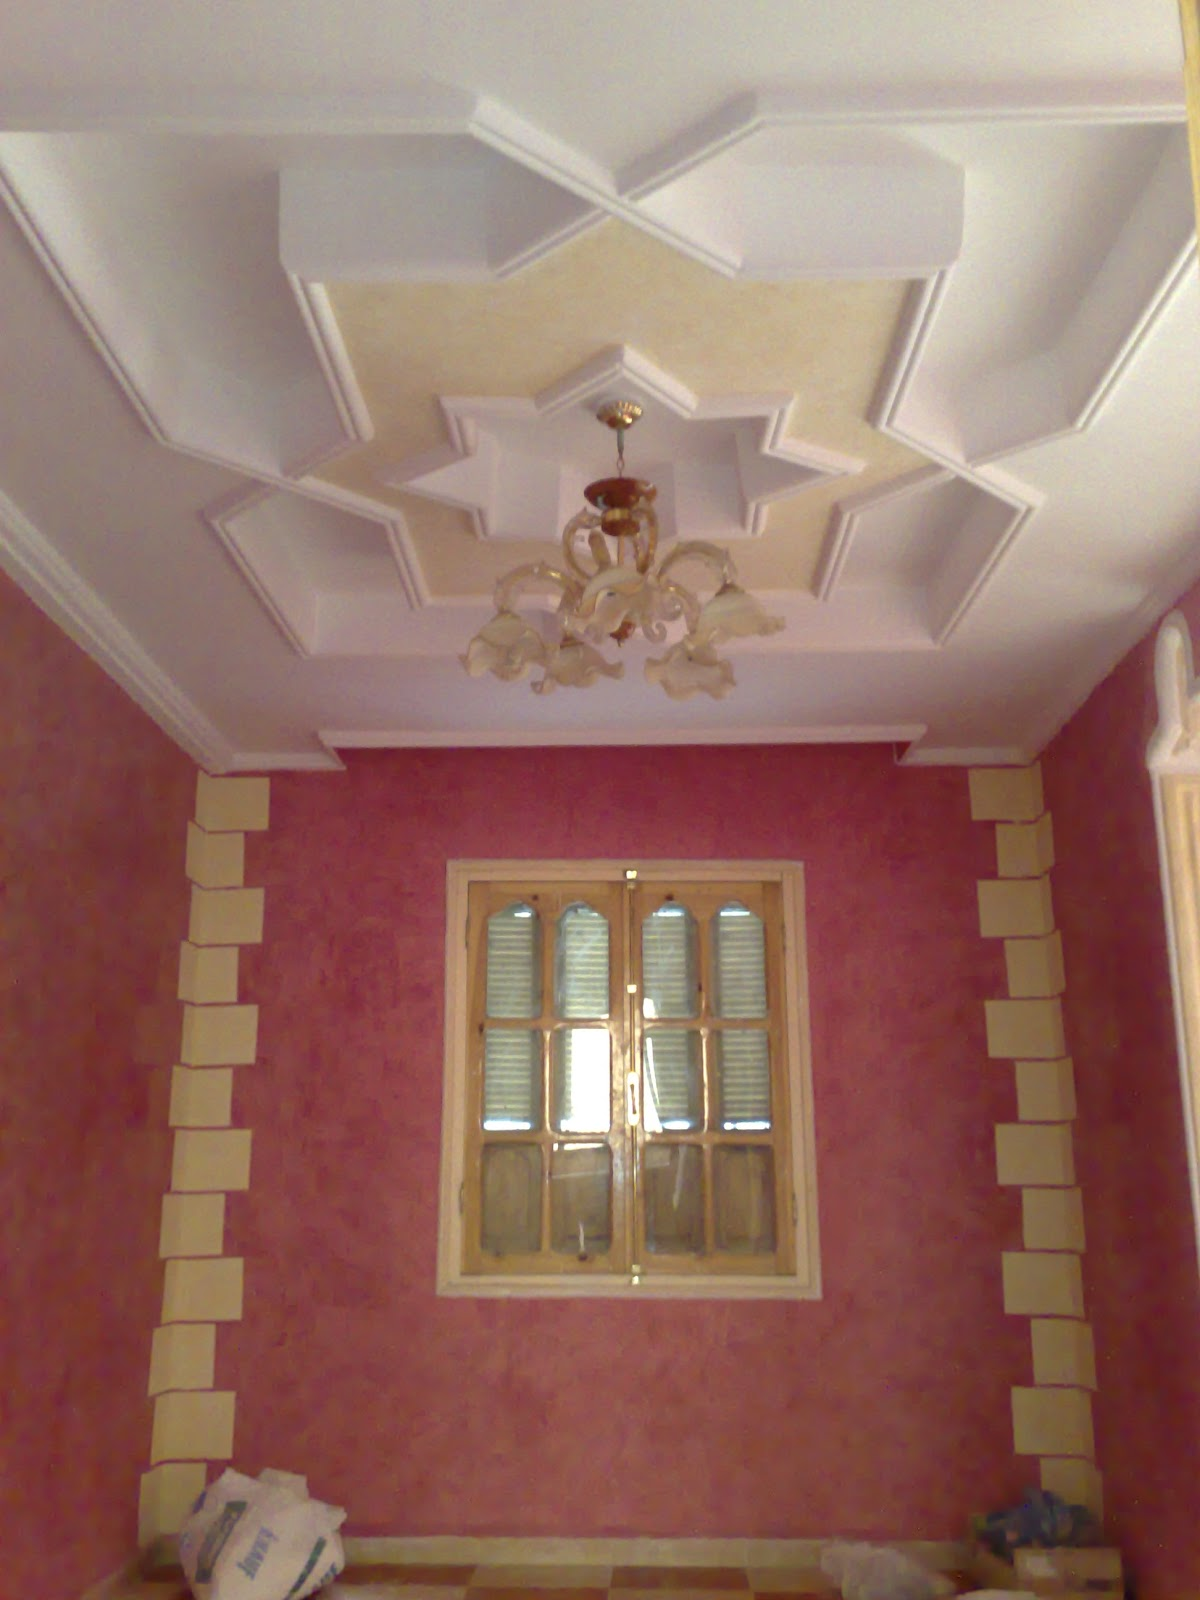 Decoration plafond platre platre for Decoration platre plafond